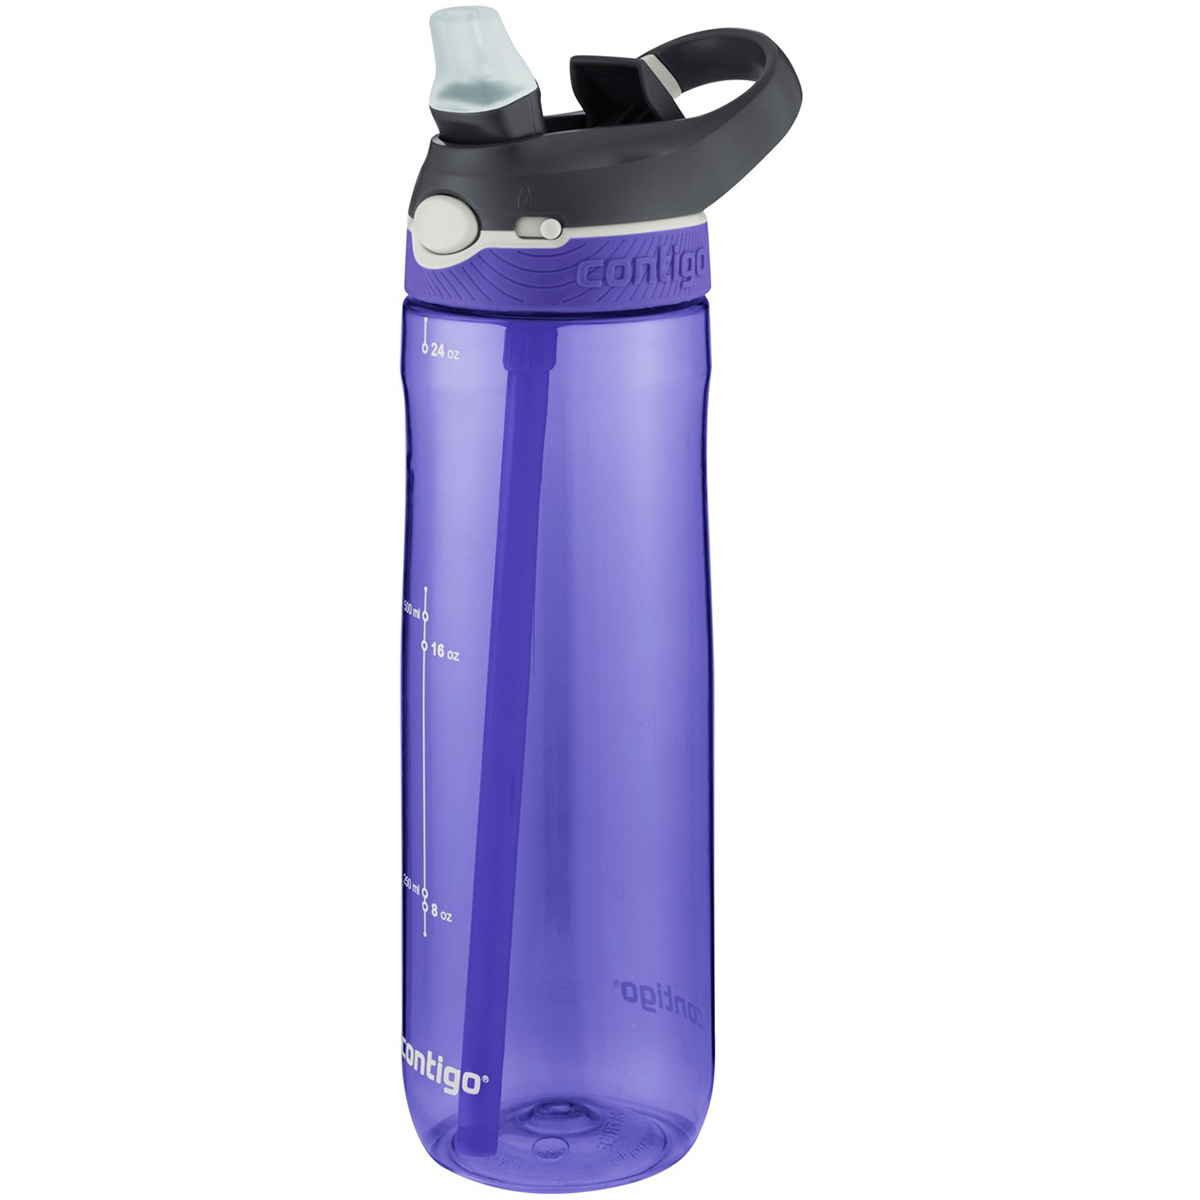 Contigo-24-oz-Ashland-Autospout-Water-Bottle Indexbild 4